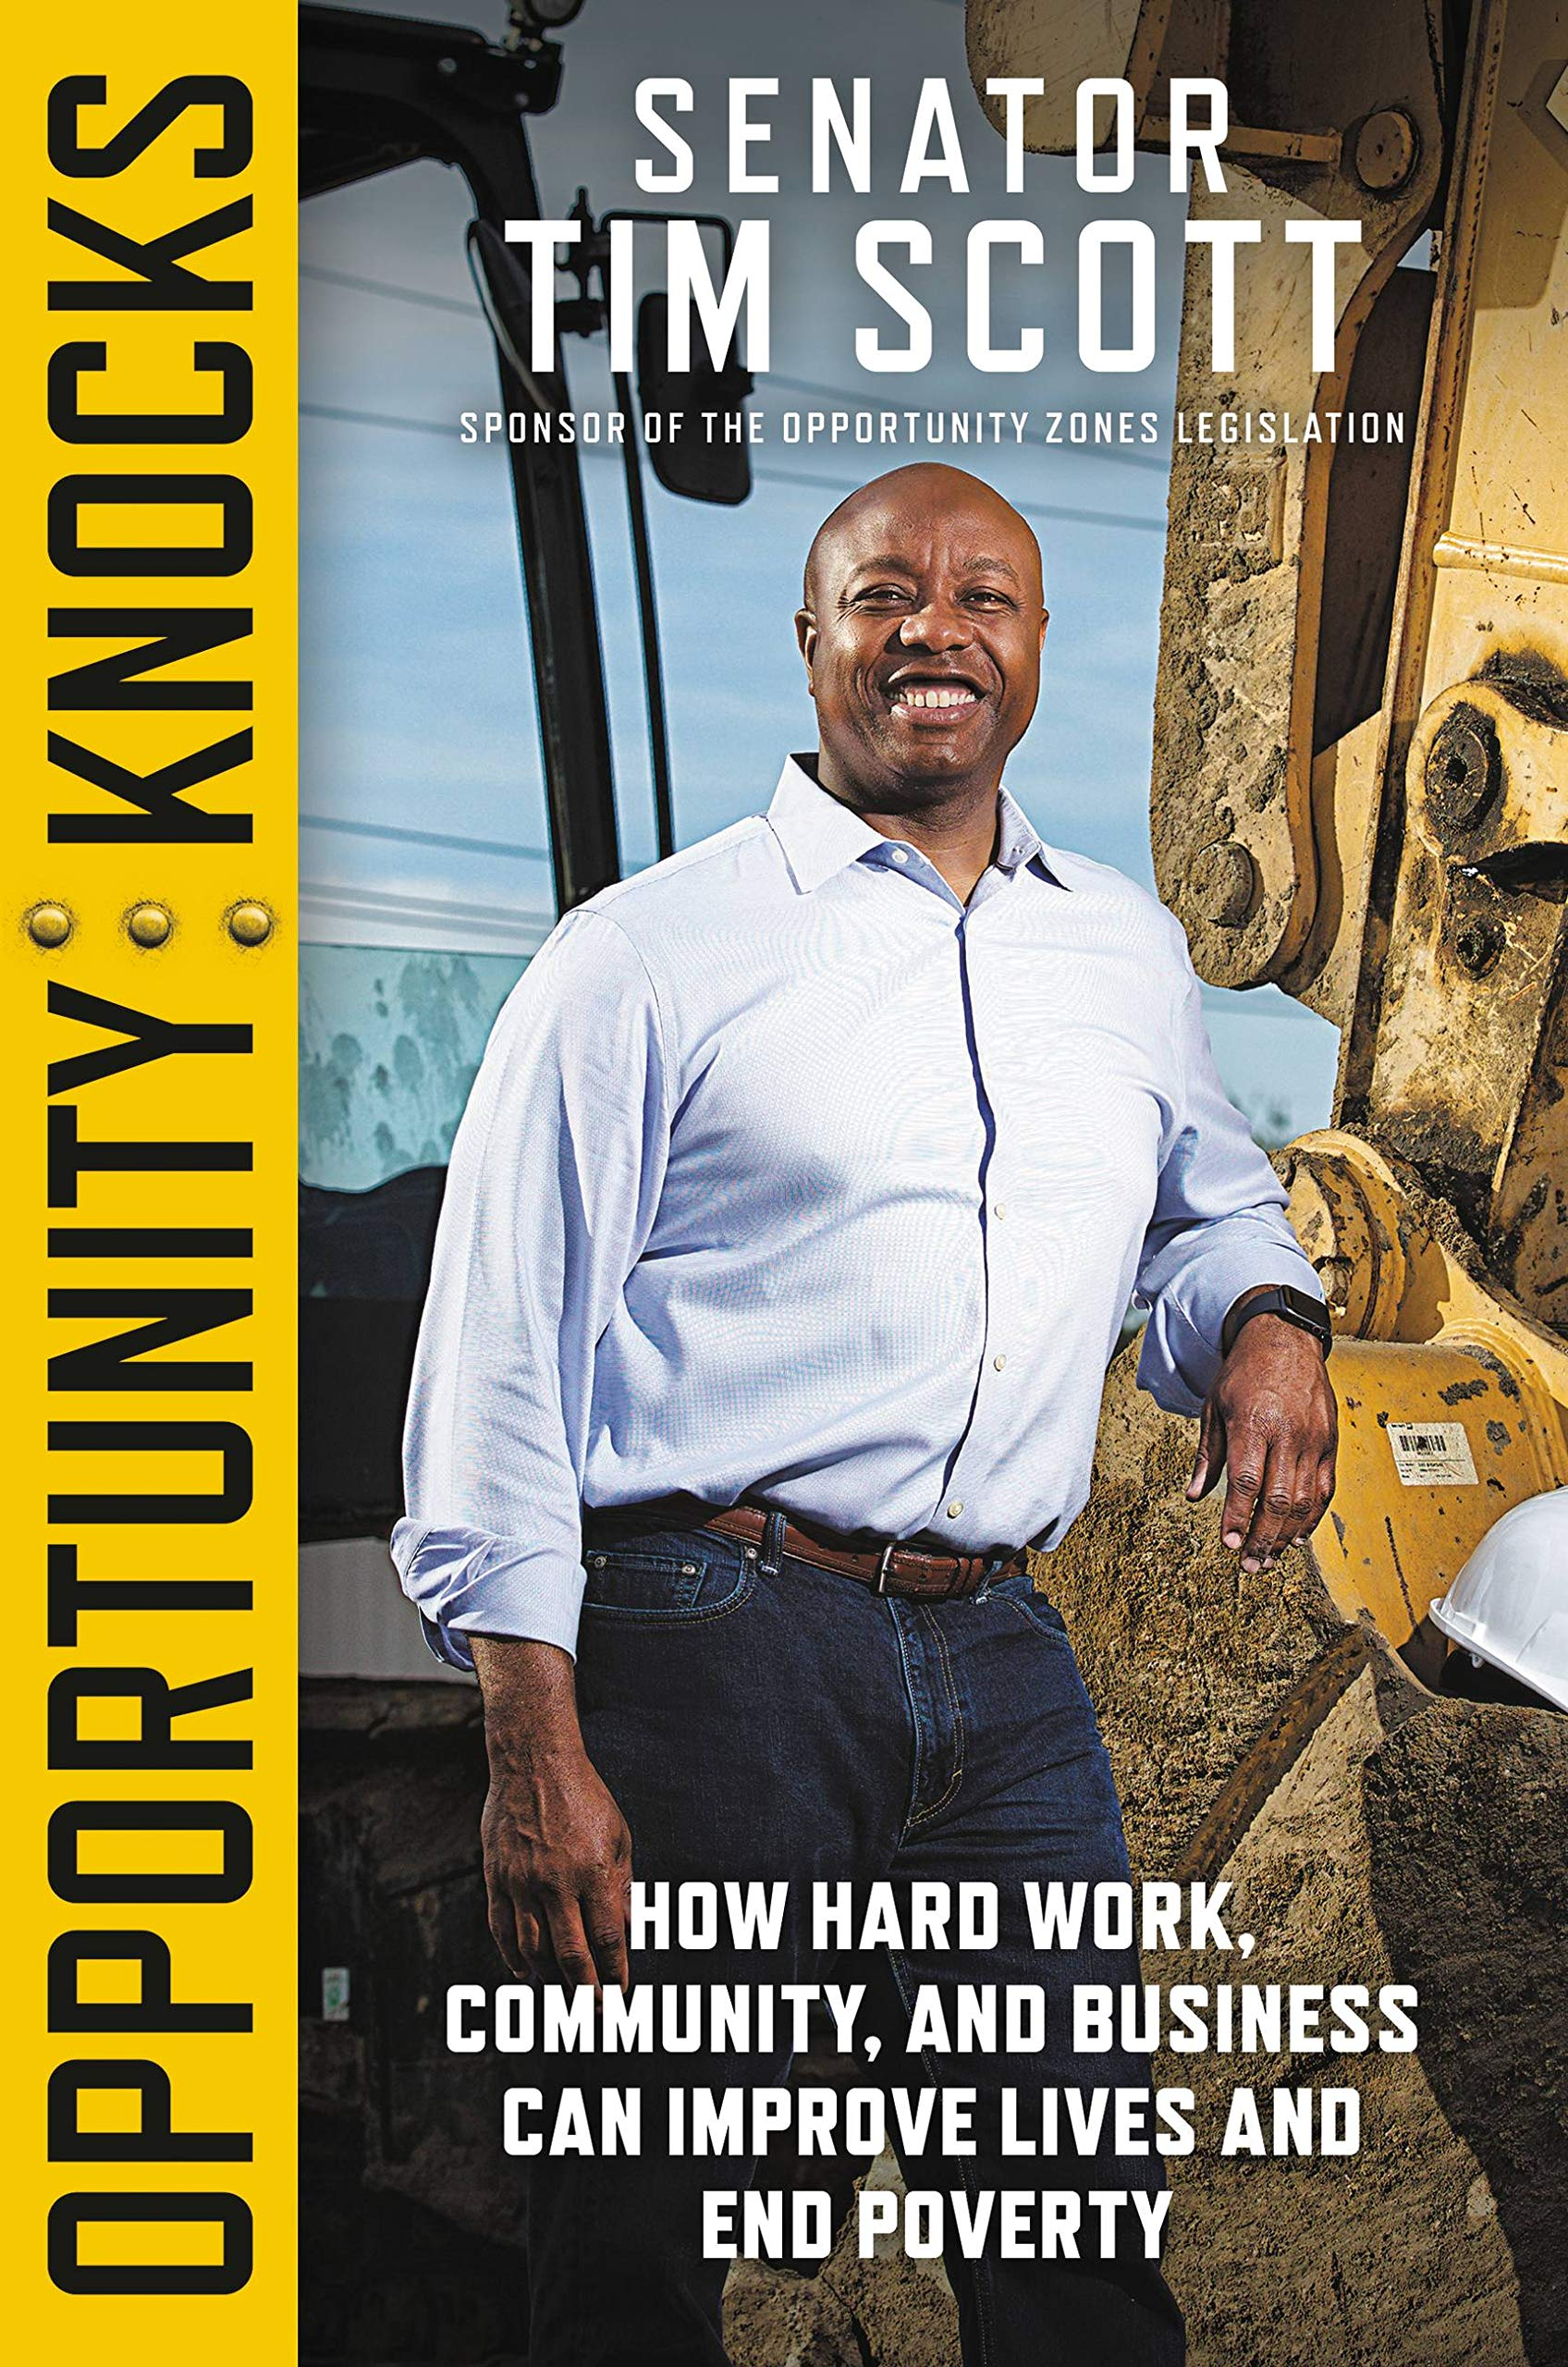 Opportunity Knocks: How Hard Work, Community, and Business Can Improve Lives and End Poverty